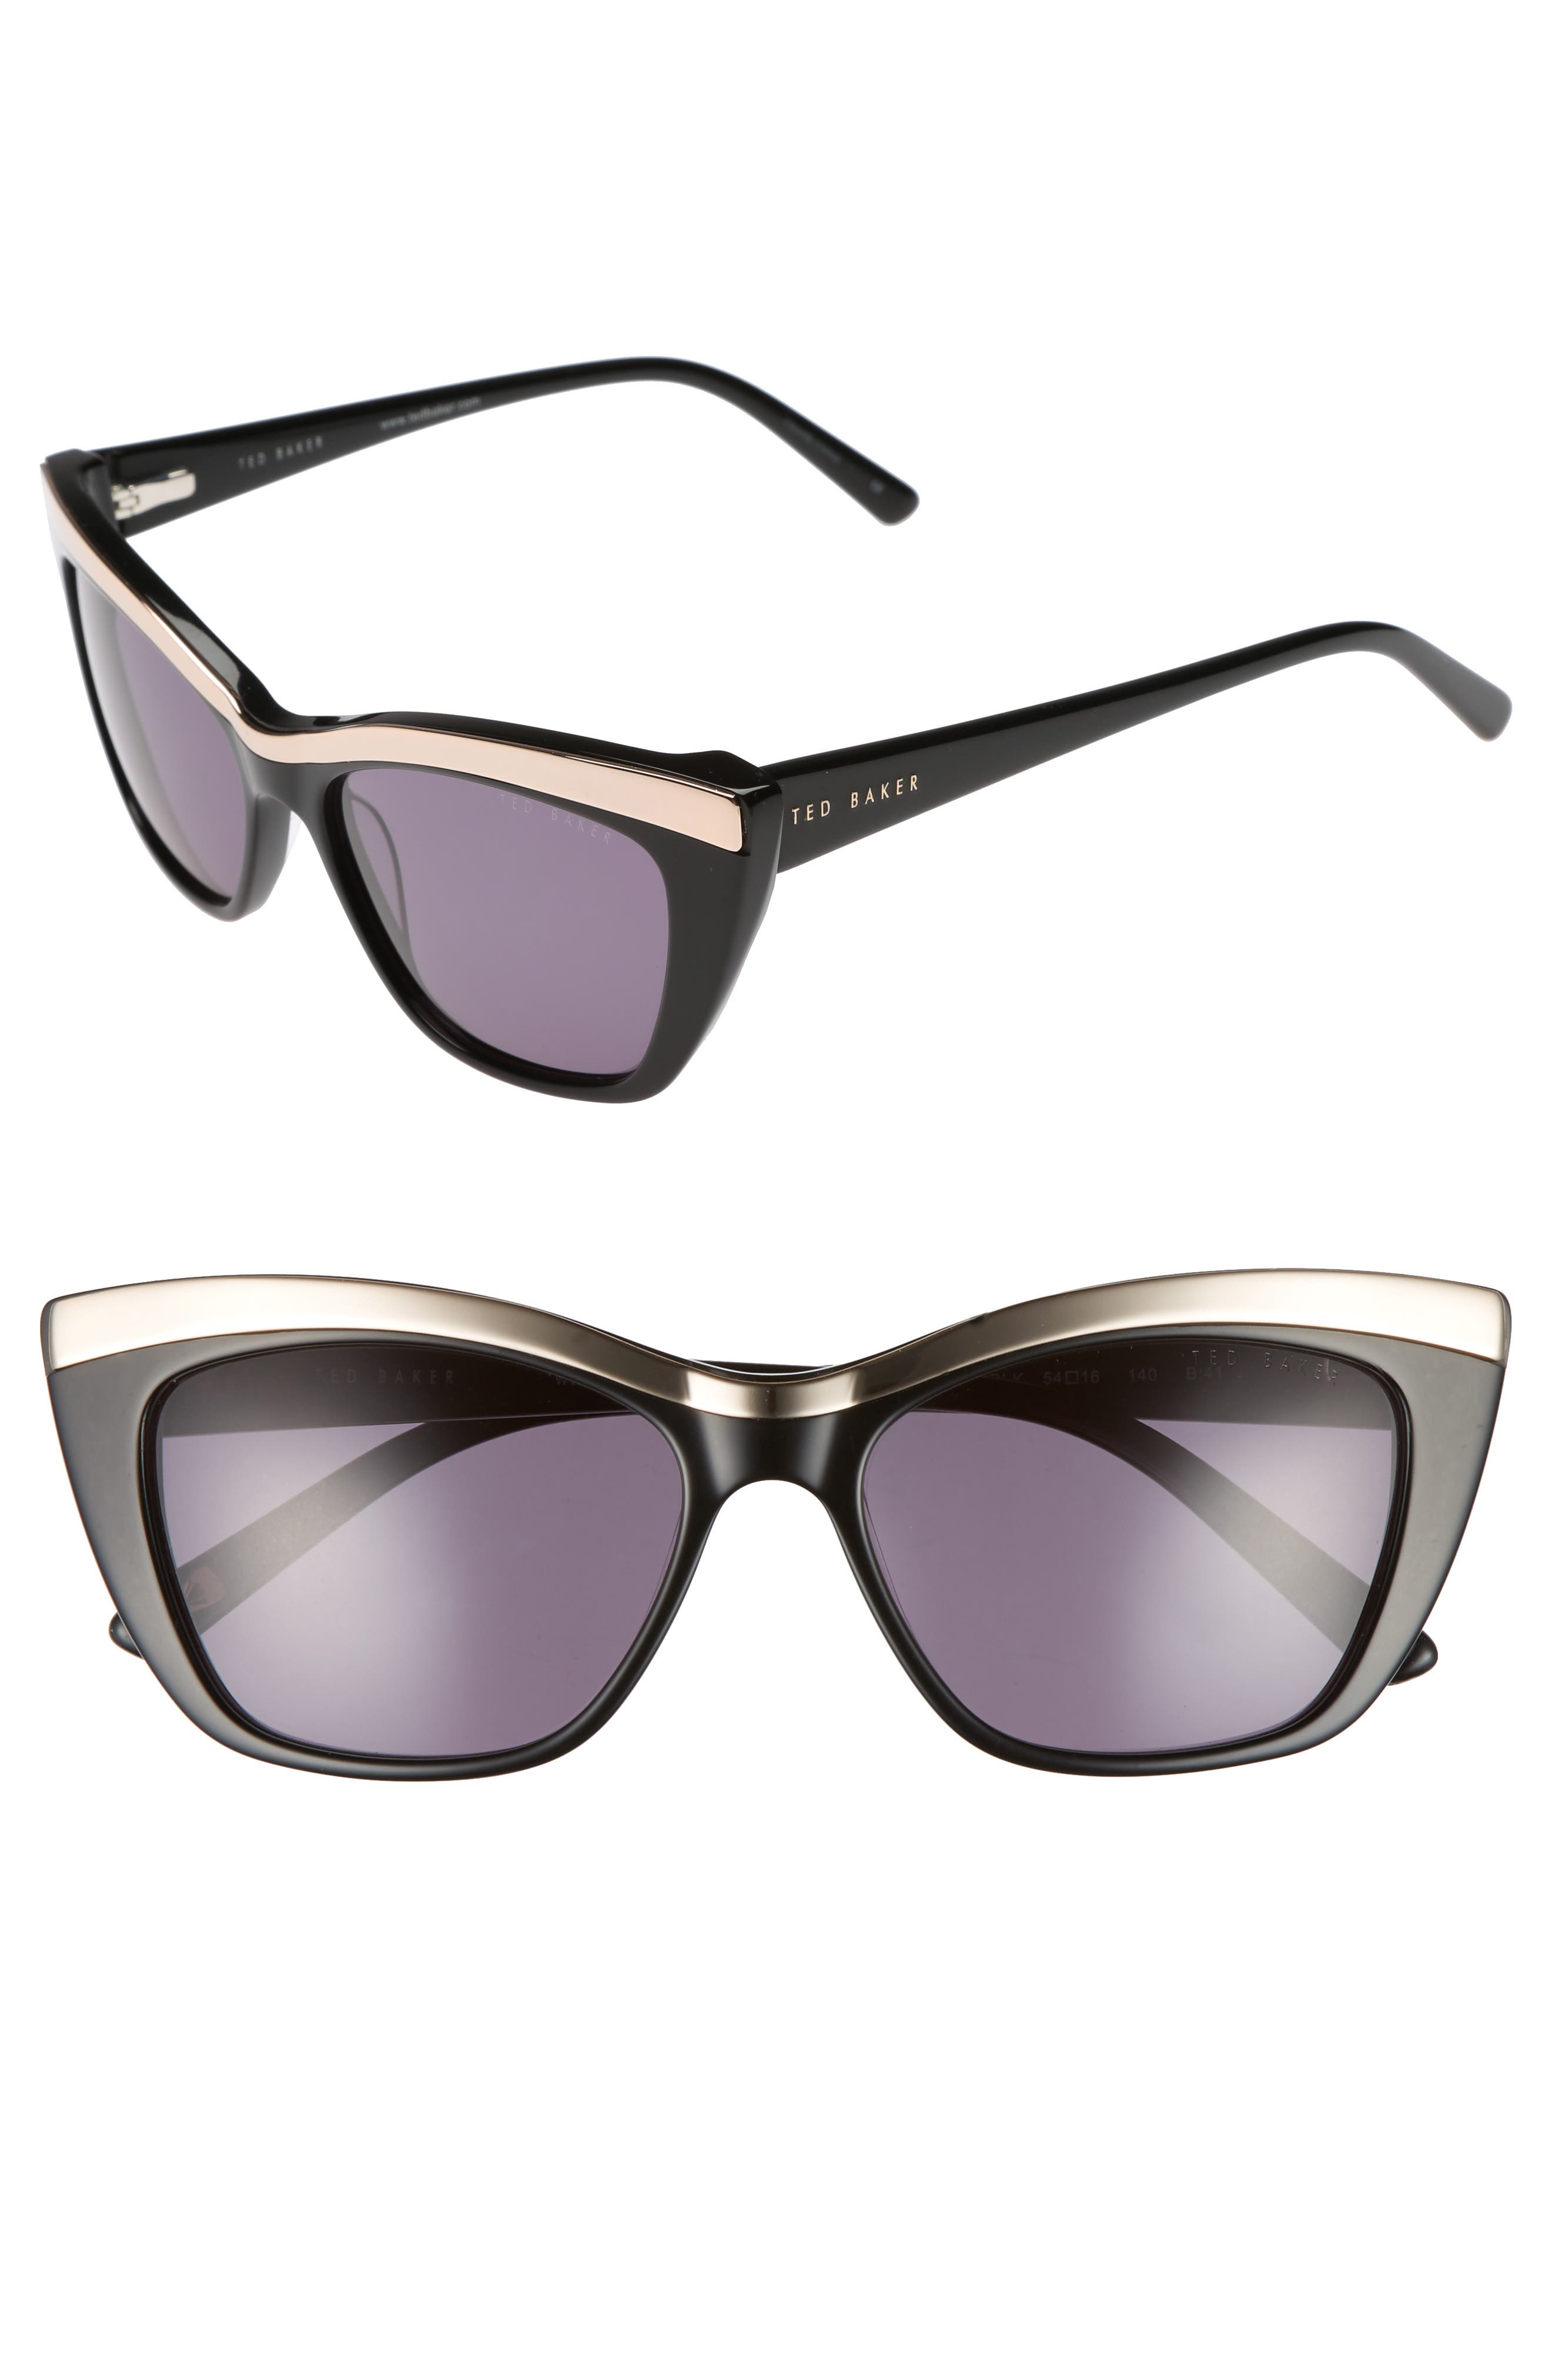 54mm Rectangle Cat Eye Sunglasses,                         Main,                         color, 001